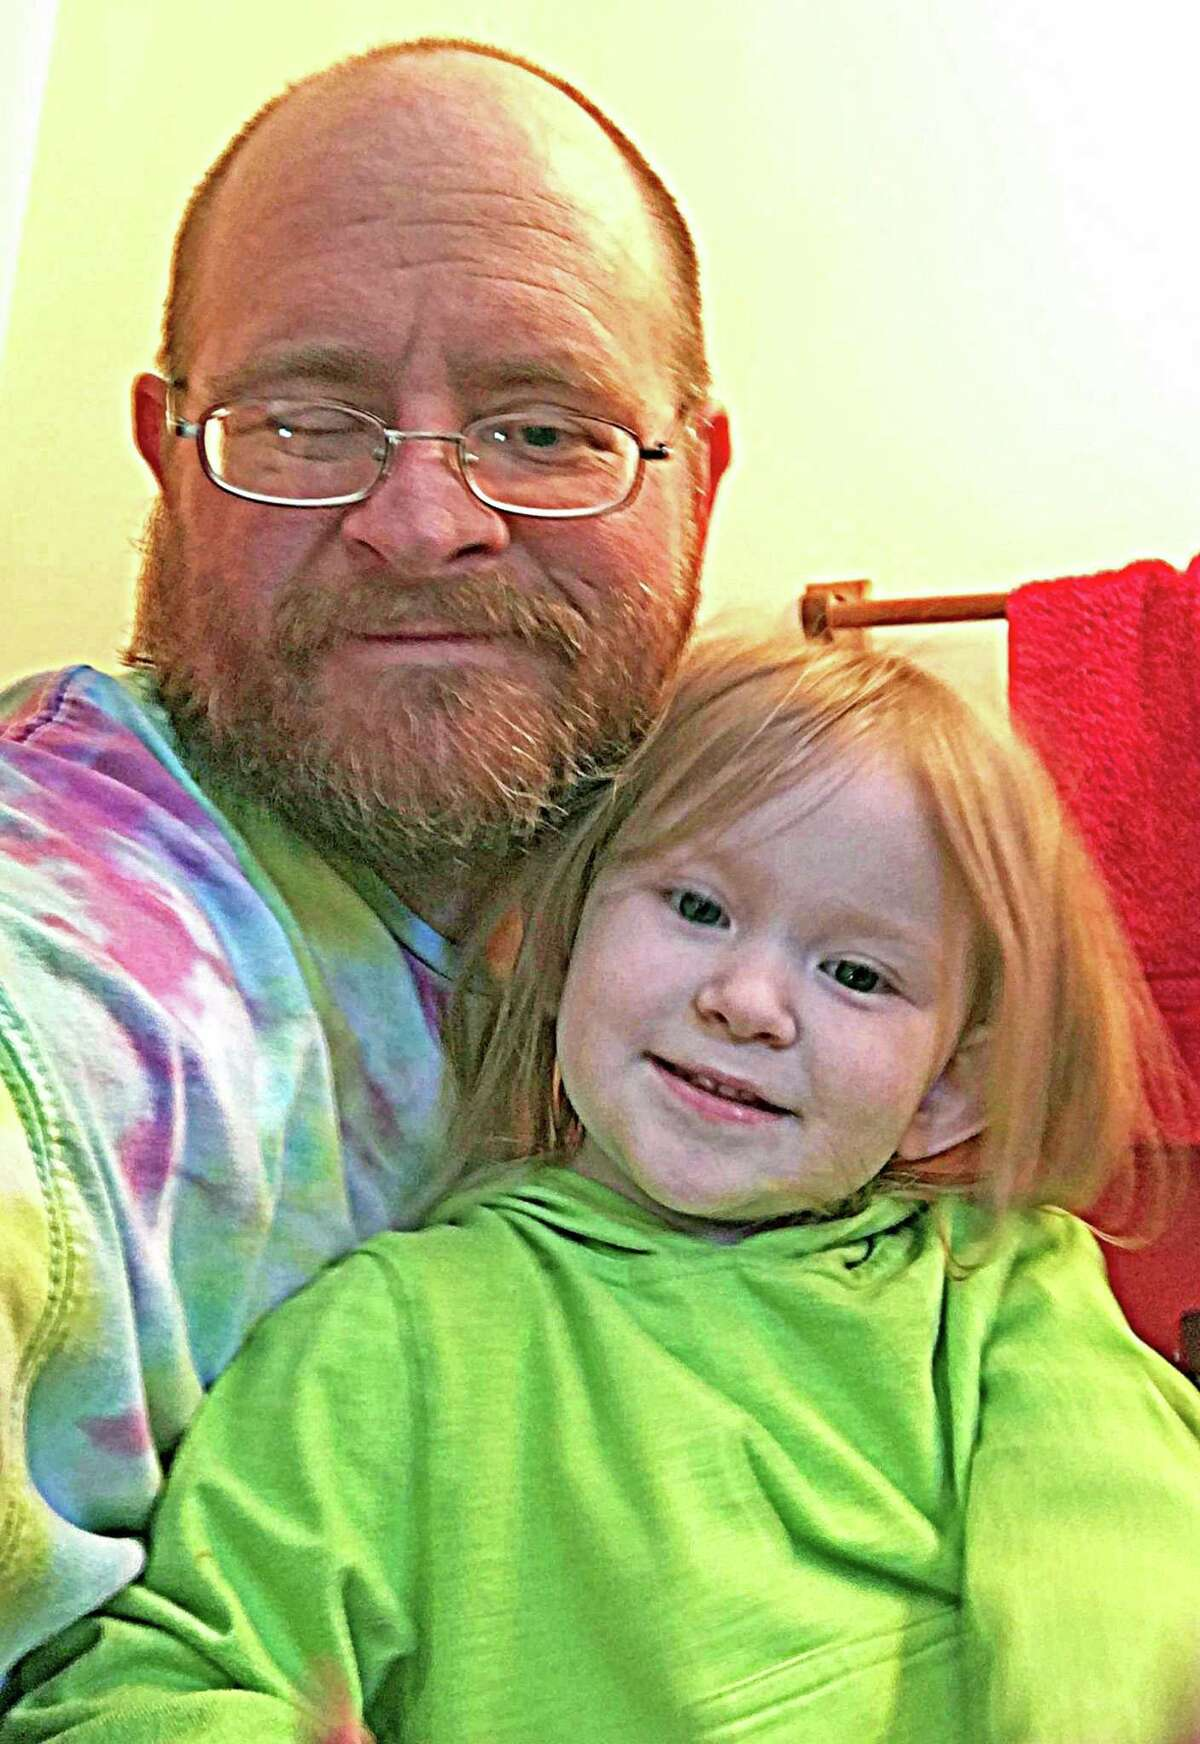 Alan Doughtery and his 3-year-old daughter McCartney live in Meriden. He has polycystic kidney disease and needs a kidney transplant. He was just recently approved for the Hartford Hospital donor list and undergoes dialysis every evening because his kidneys only function at 3 percent.